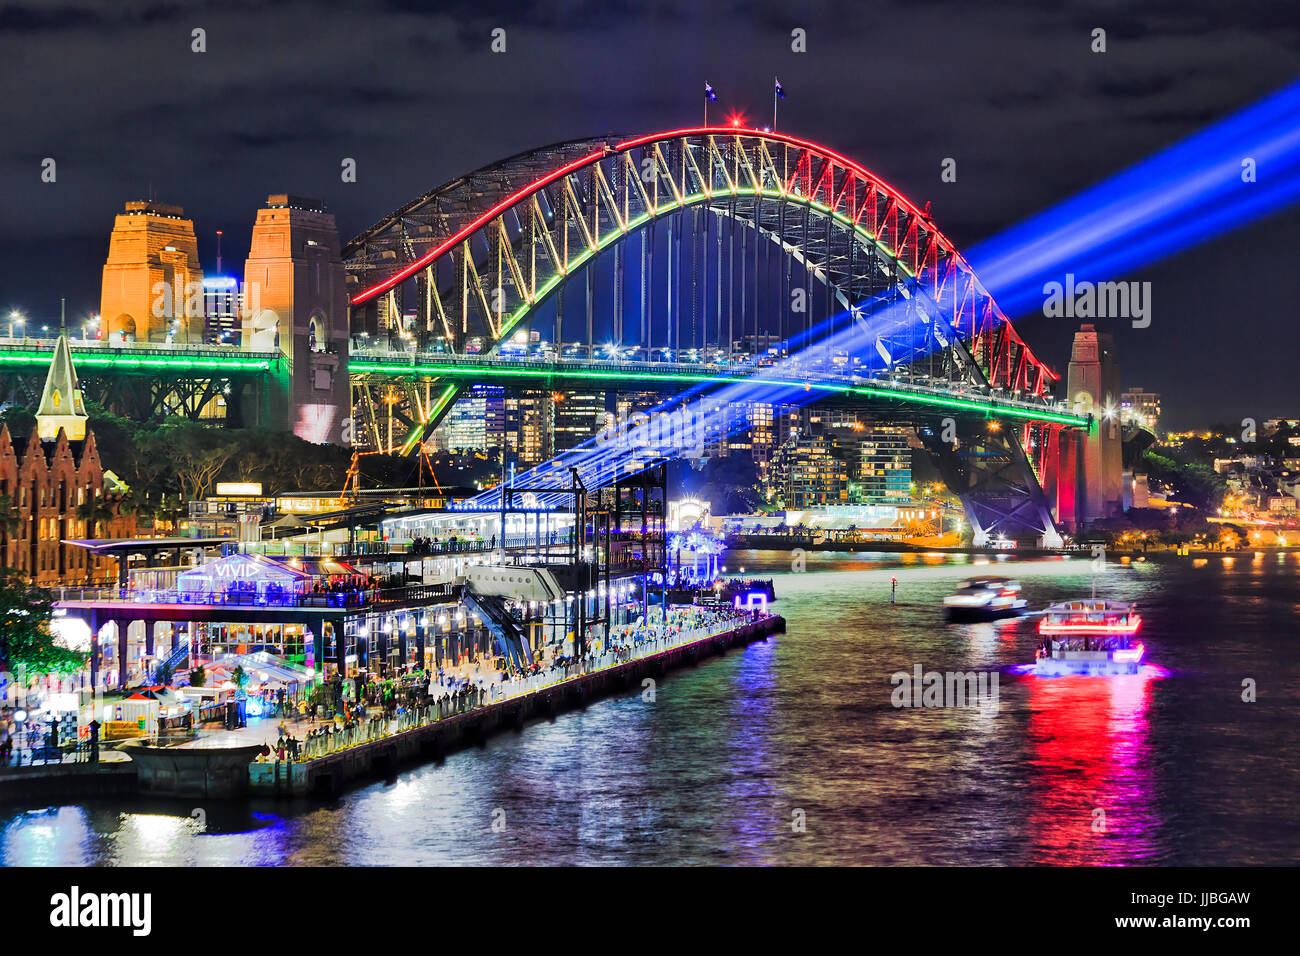 Sydney harbour bridge brightly illuminated and sending blue beams of projector light during Vivid Sydney light and Stock Photo